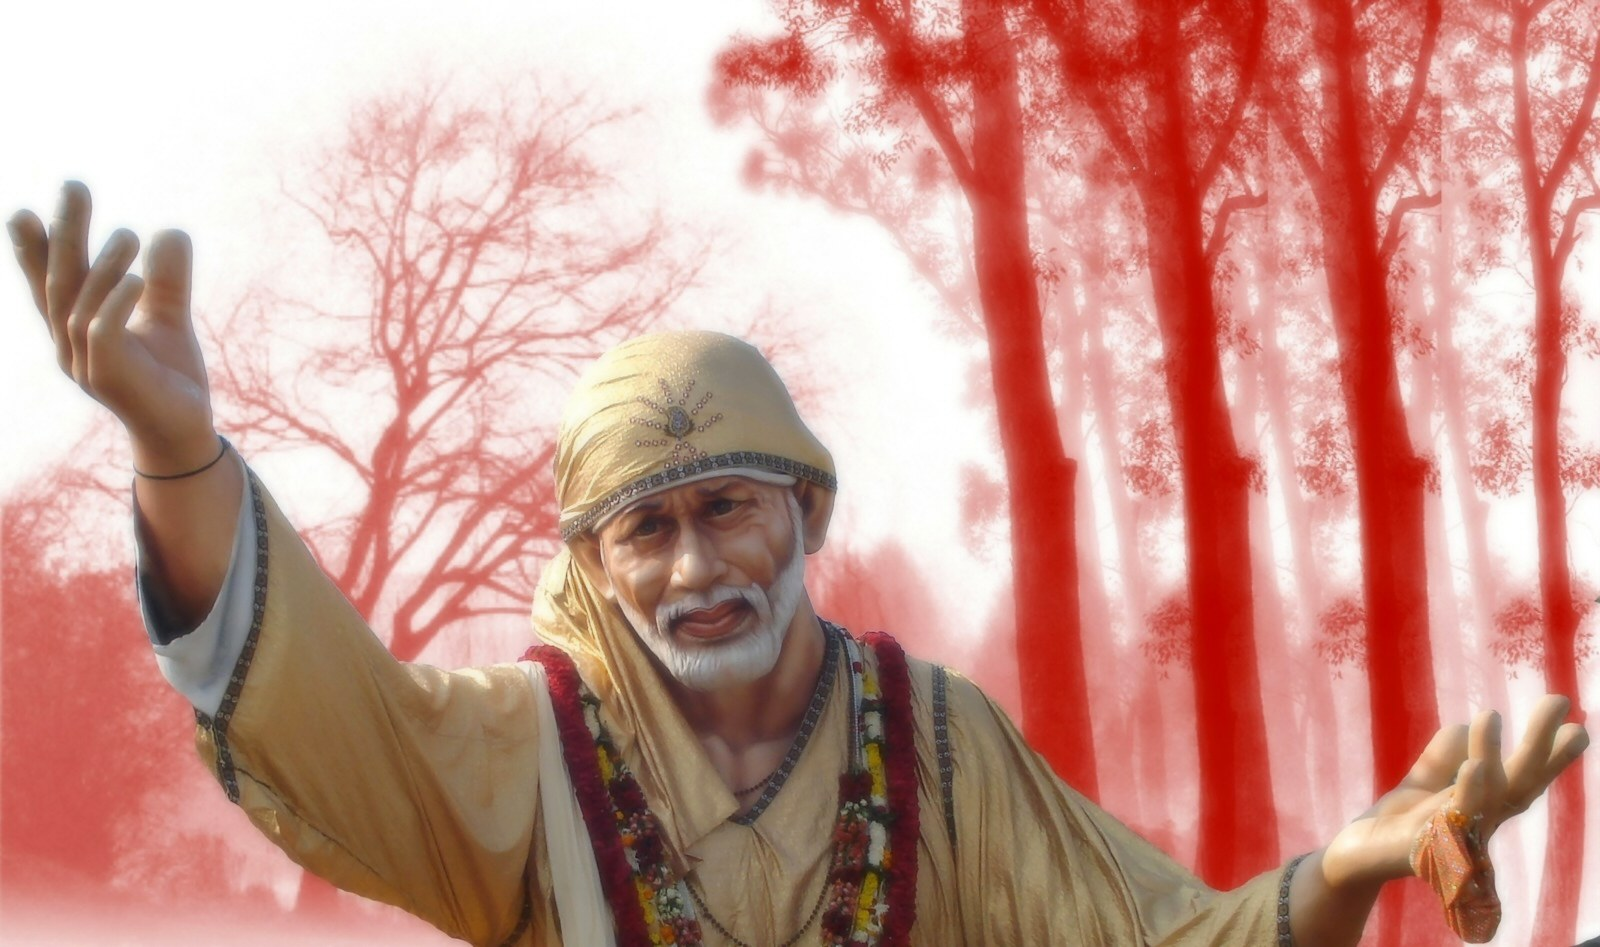 High Definition Photo And Wallpapers: shirdi sai baba photo,shirdi sai baba